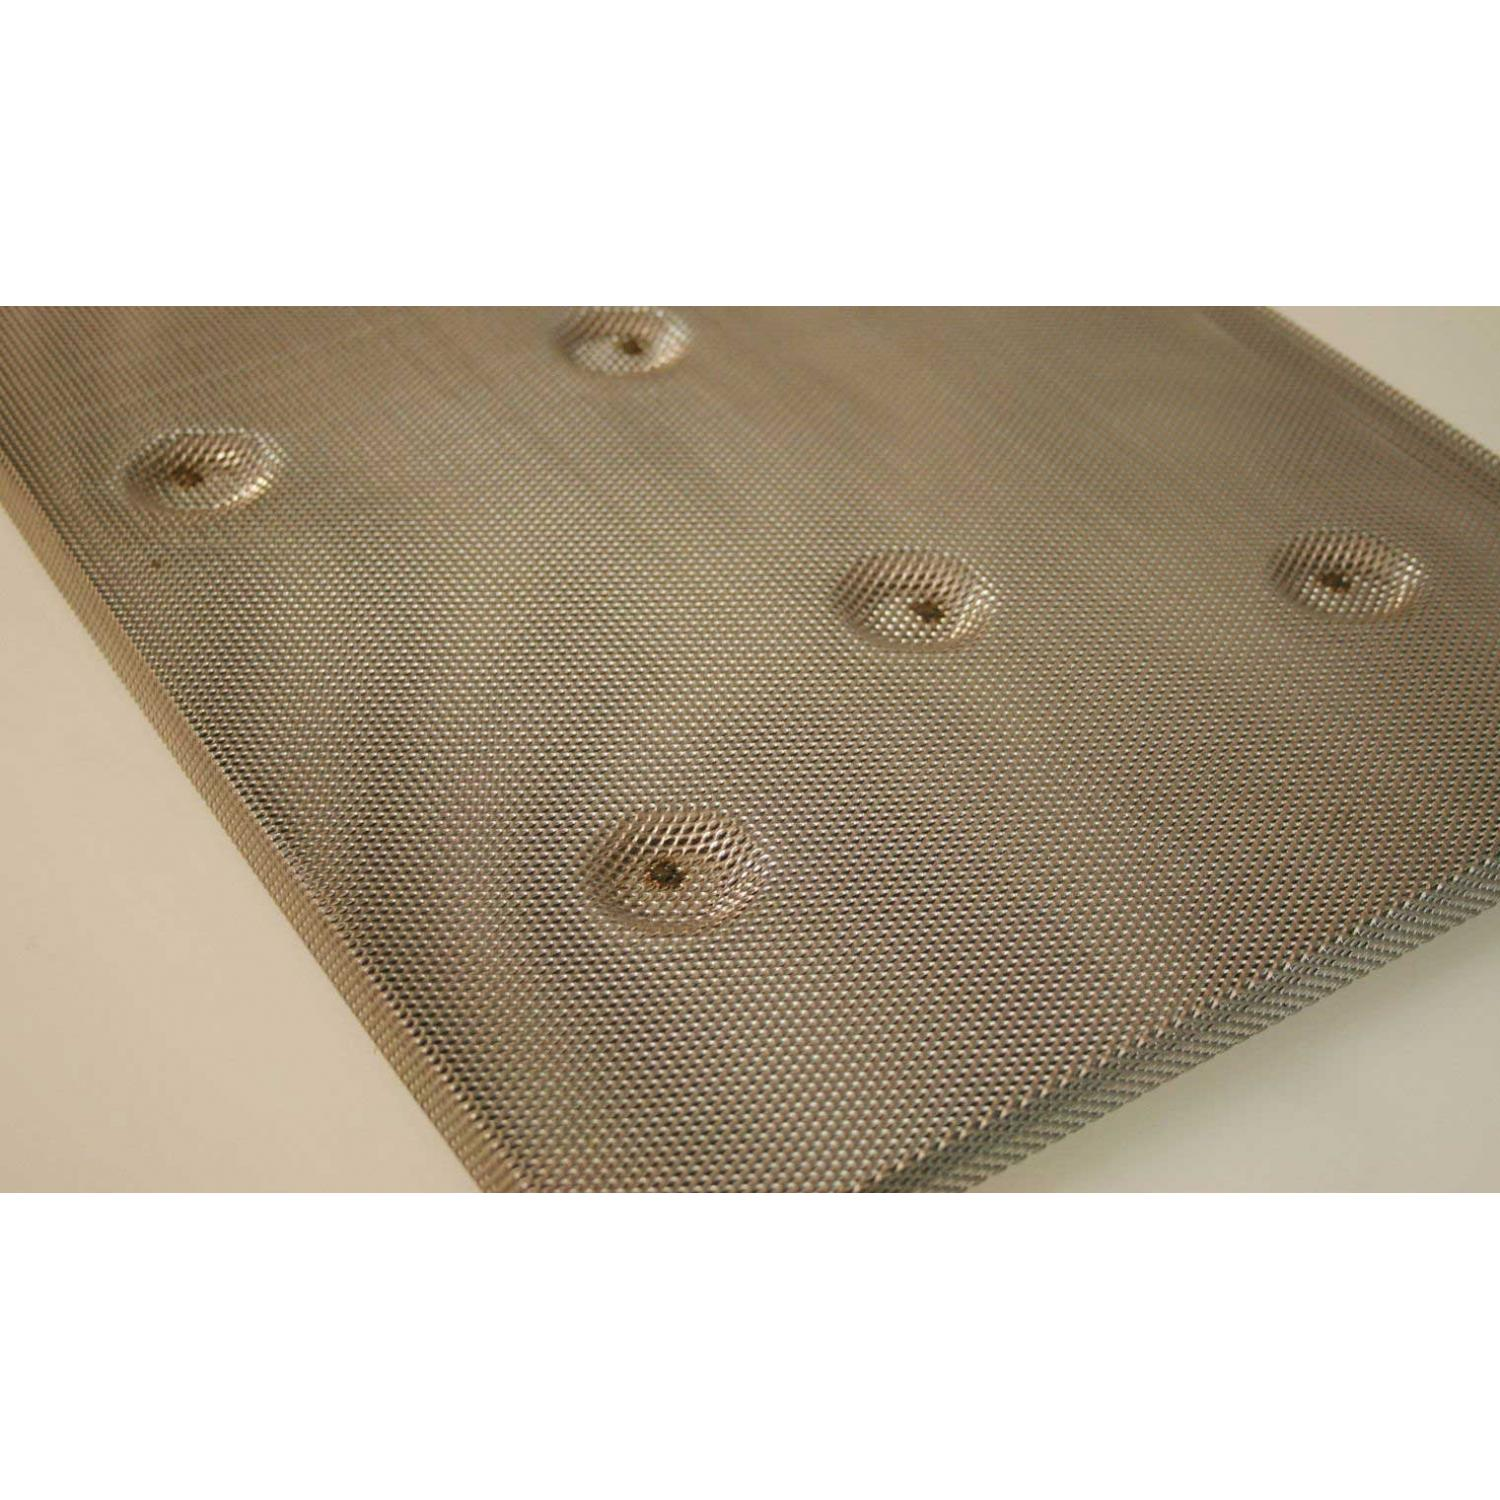 Broilmaster Stainless Steel Flavor Screen For Size 3 Gas Grills